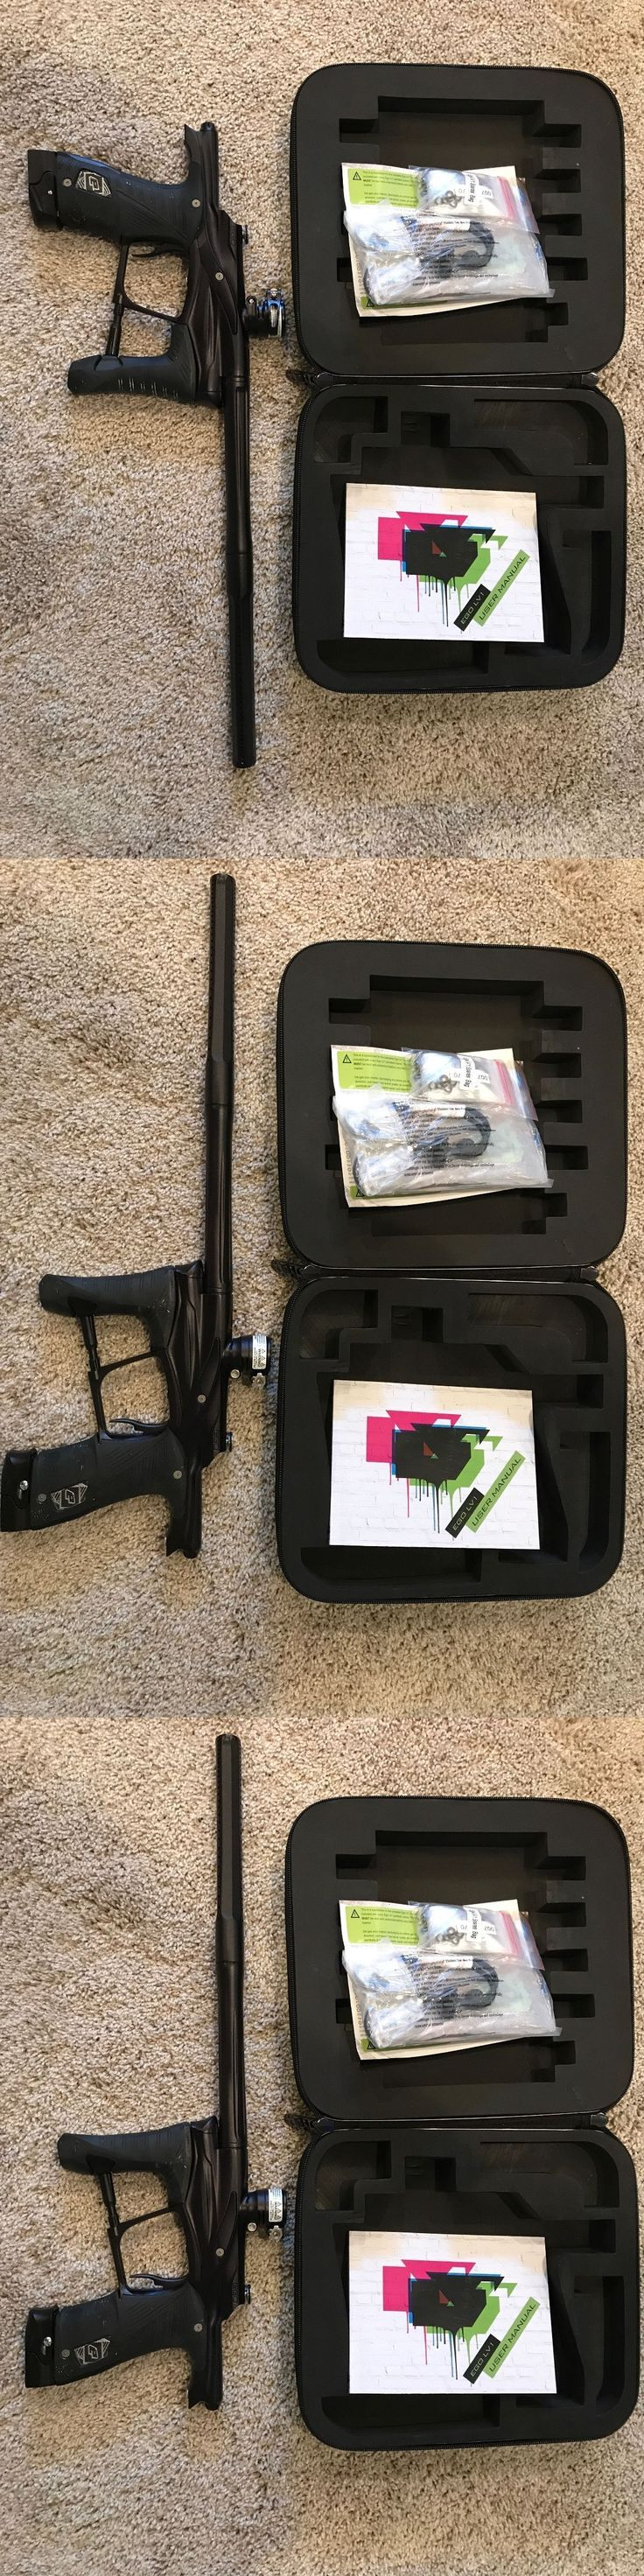 Paintball Markers 16048: Planet Eclipse Ego Lv1 In Slightly Used Condition (Only Used Once) -> BUY IT NOW ONLY: $549 on eBay!